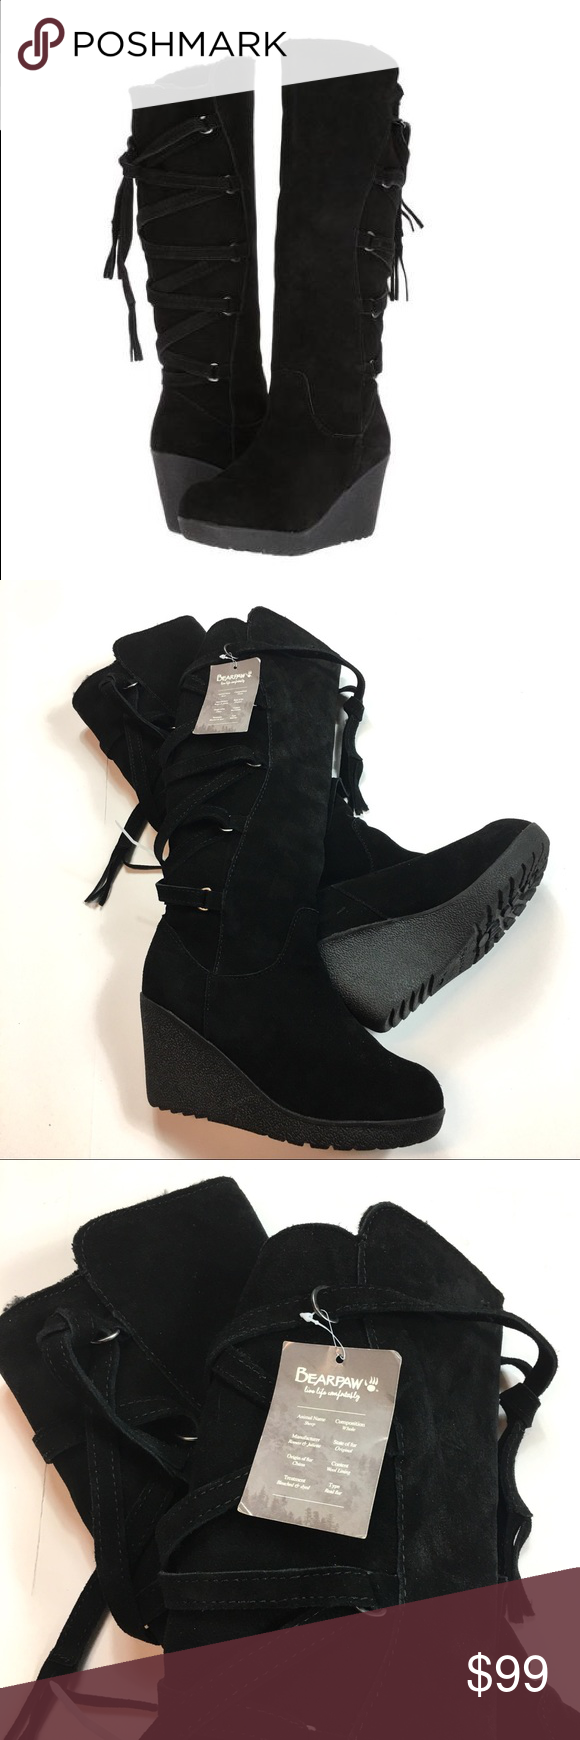 93c98c8fecd I ACCEPT OFFERS bear paw Brittany knee high boots Bearpaw Britney Knee-High  Wedge Boot